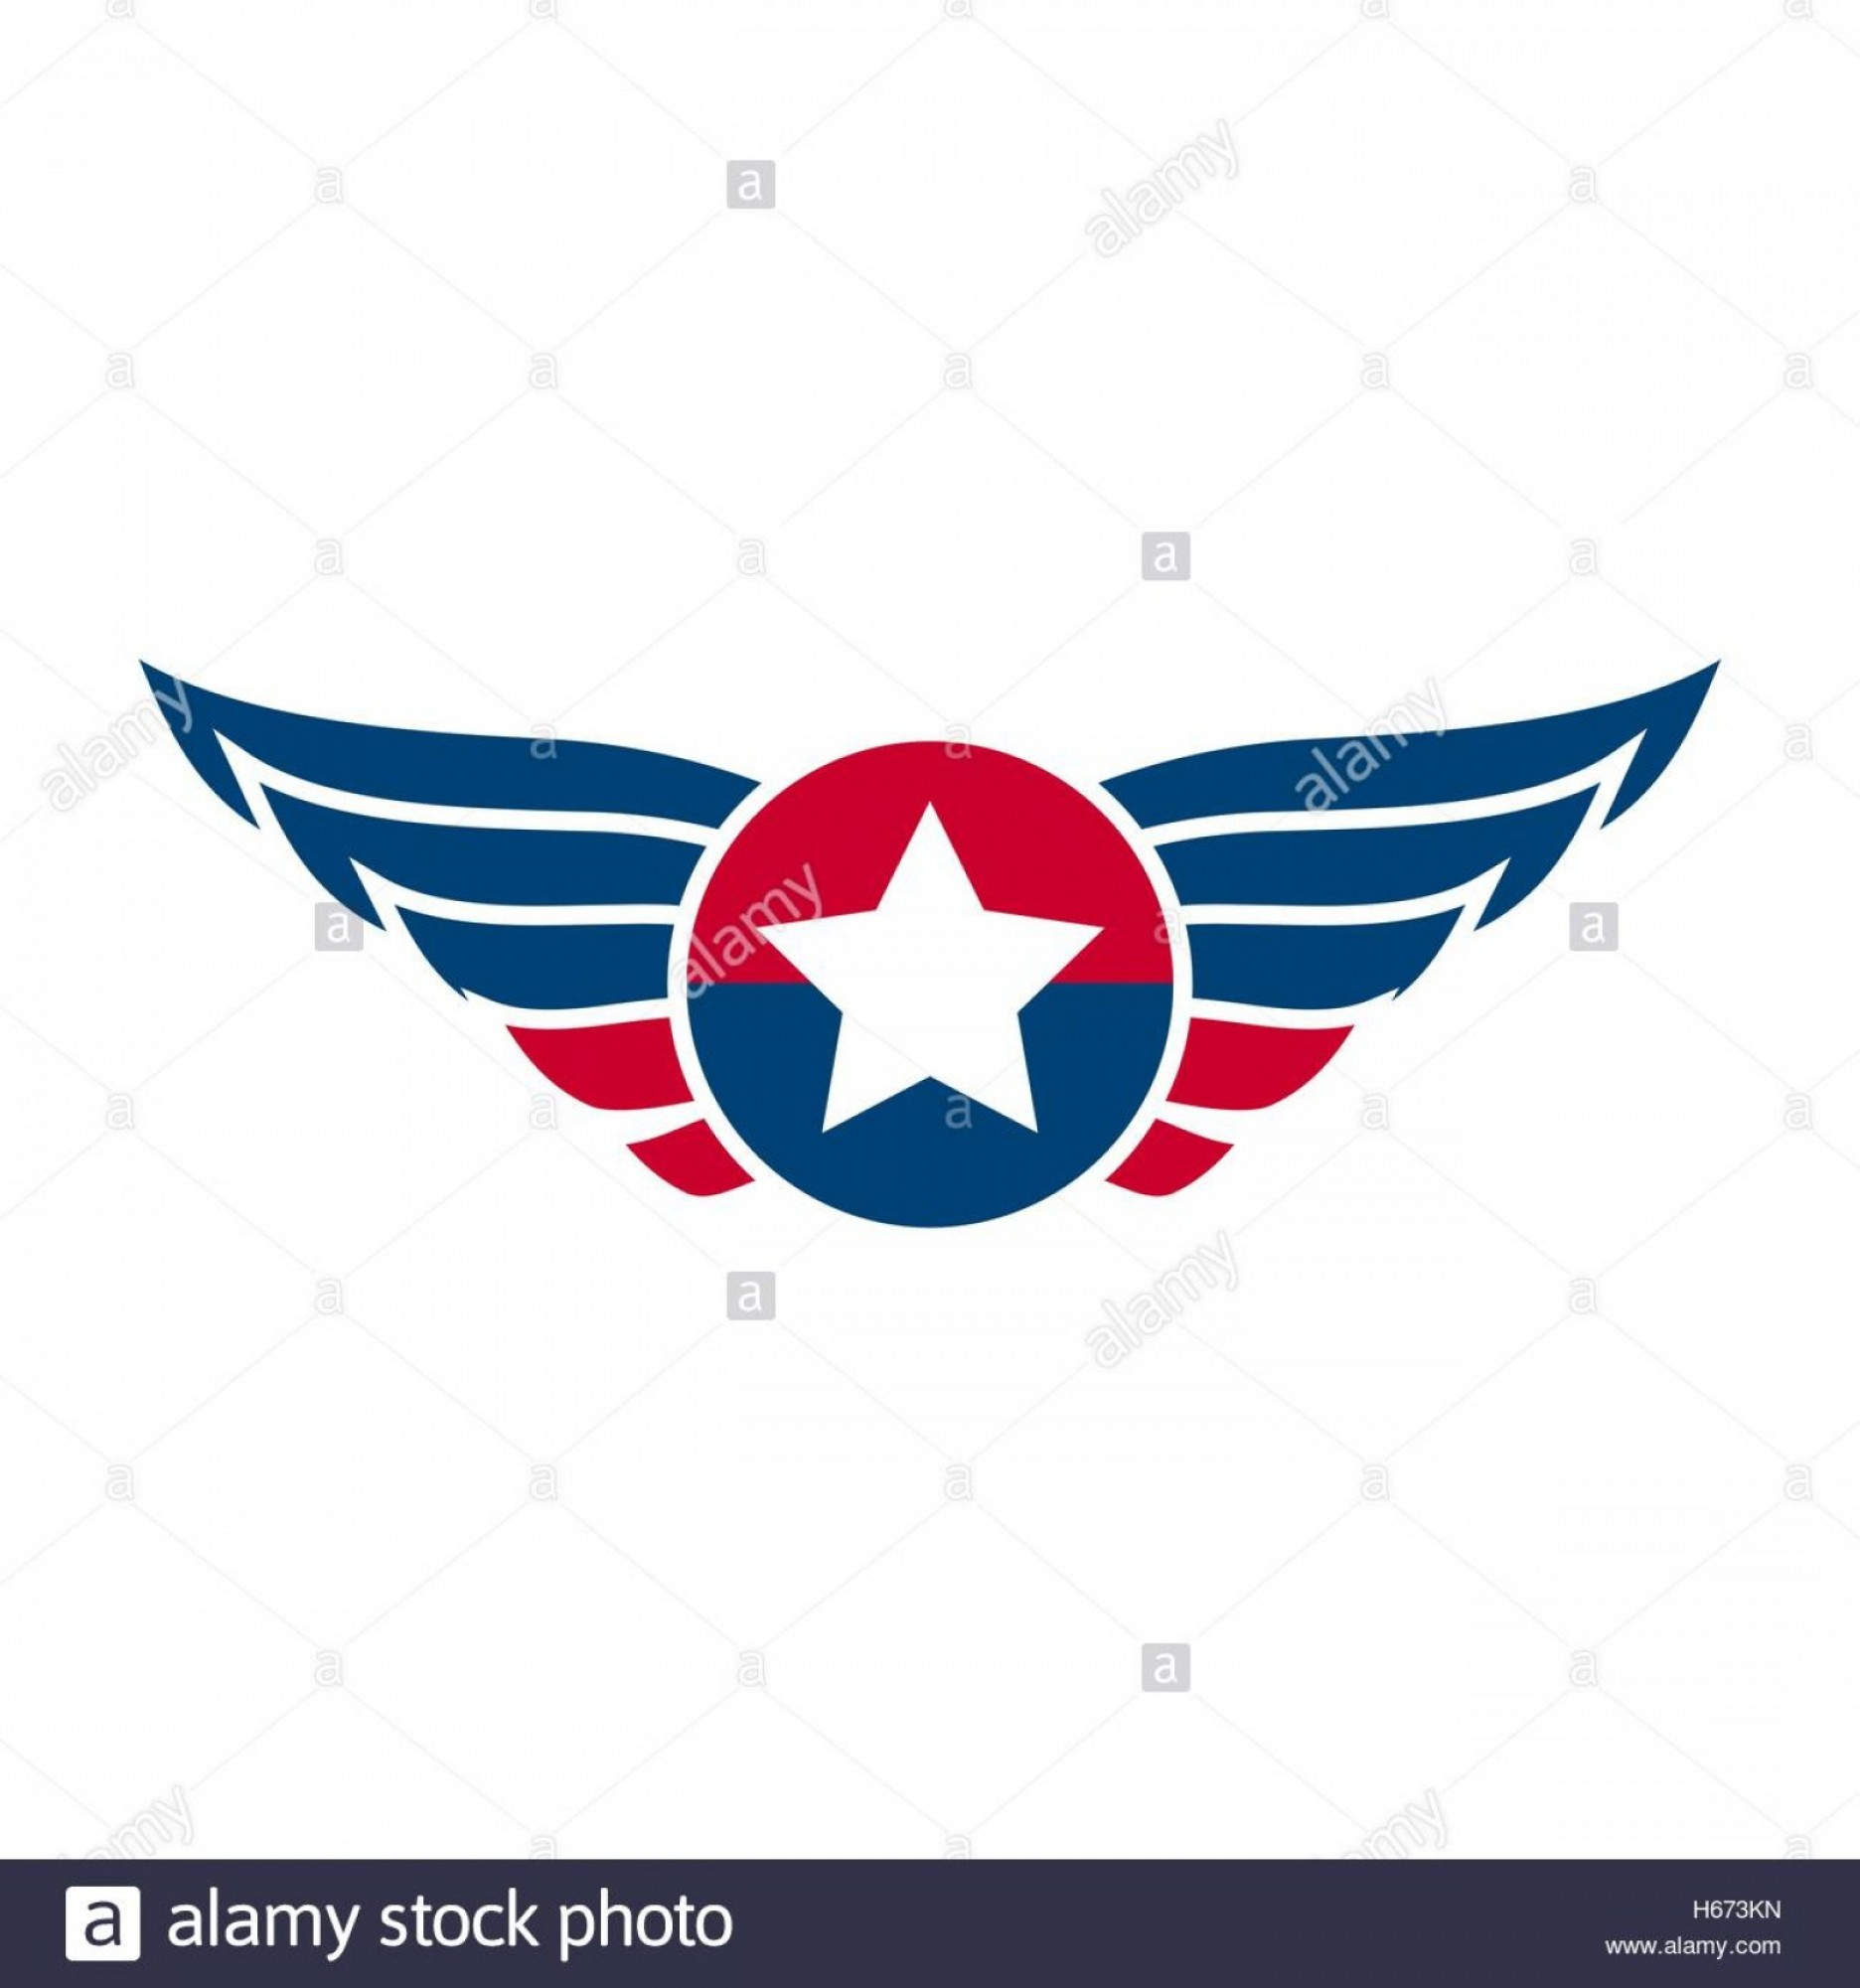 Army Aviator Wings Vector: Stock Photo Aviation Emblem Badge Or Logo